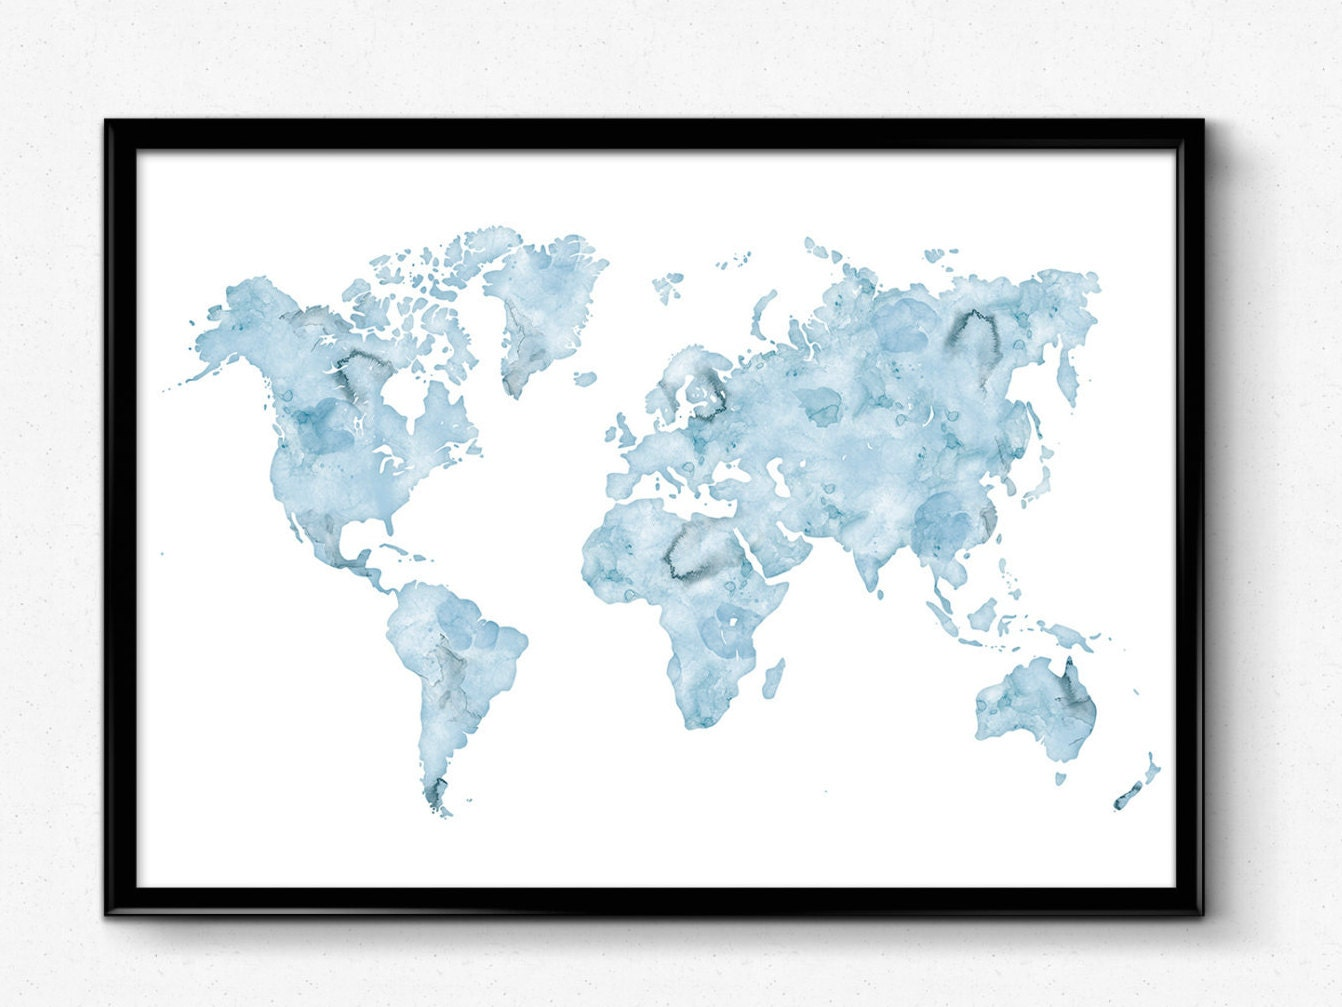 Large World Map Print 24x36 World map wall art Watercolor